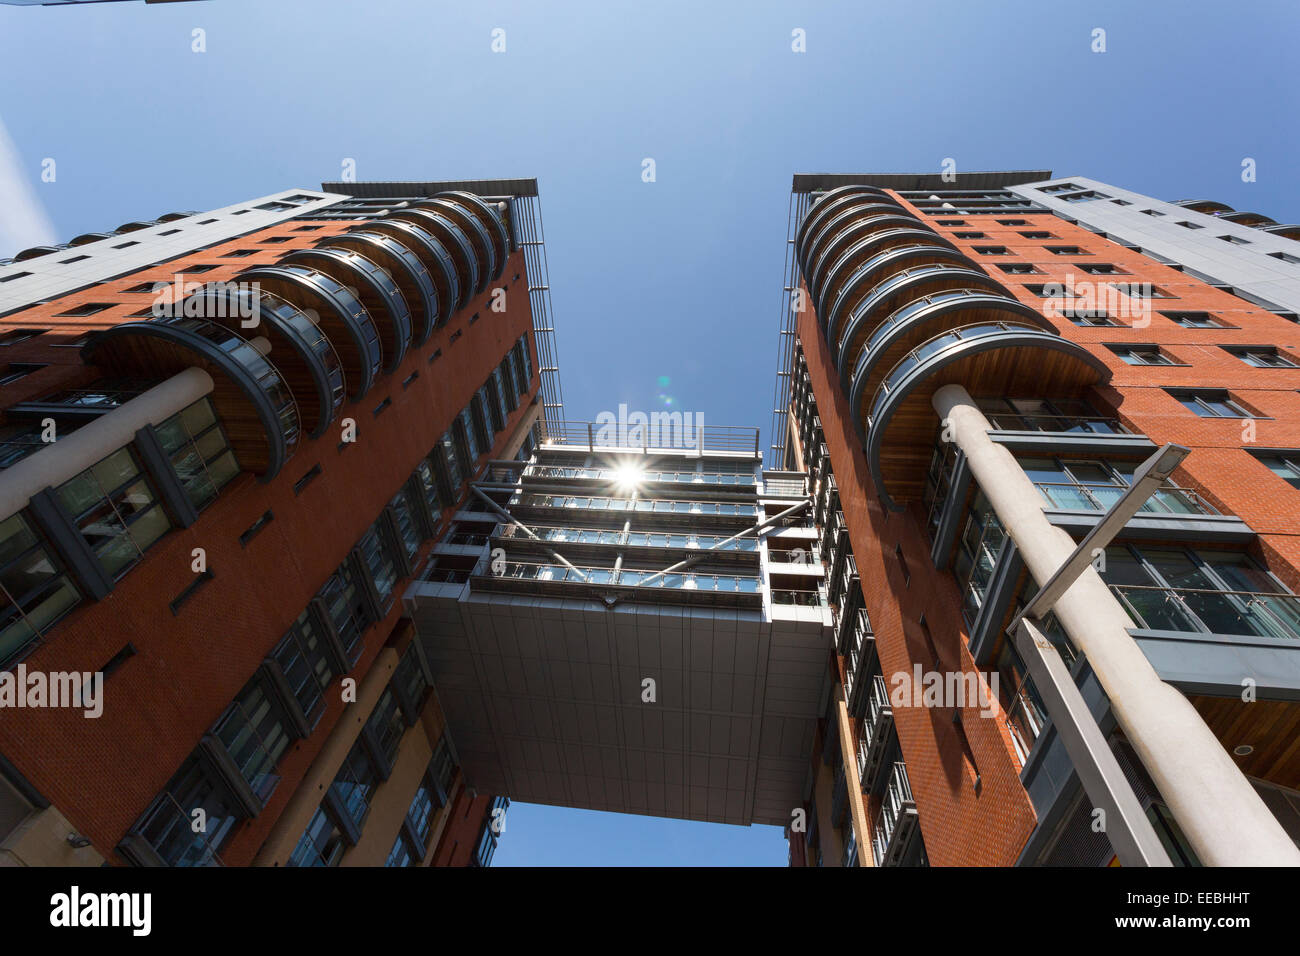 England, Manchester, Modern architecture at Spinningfileds financial district - Stock Image